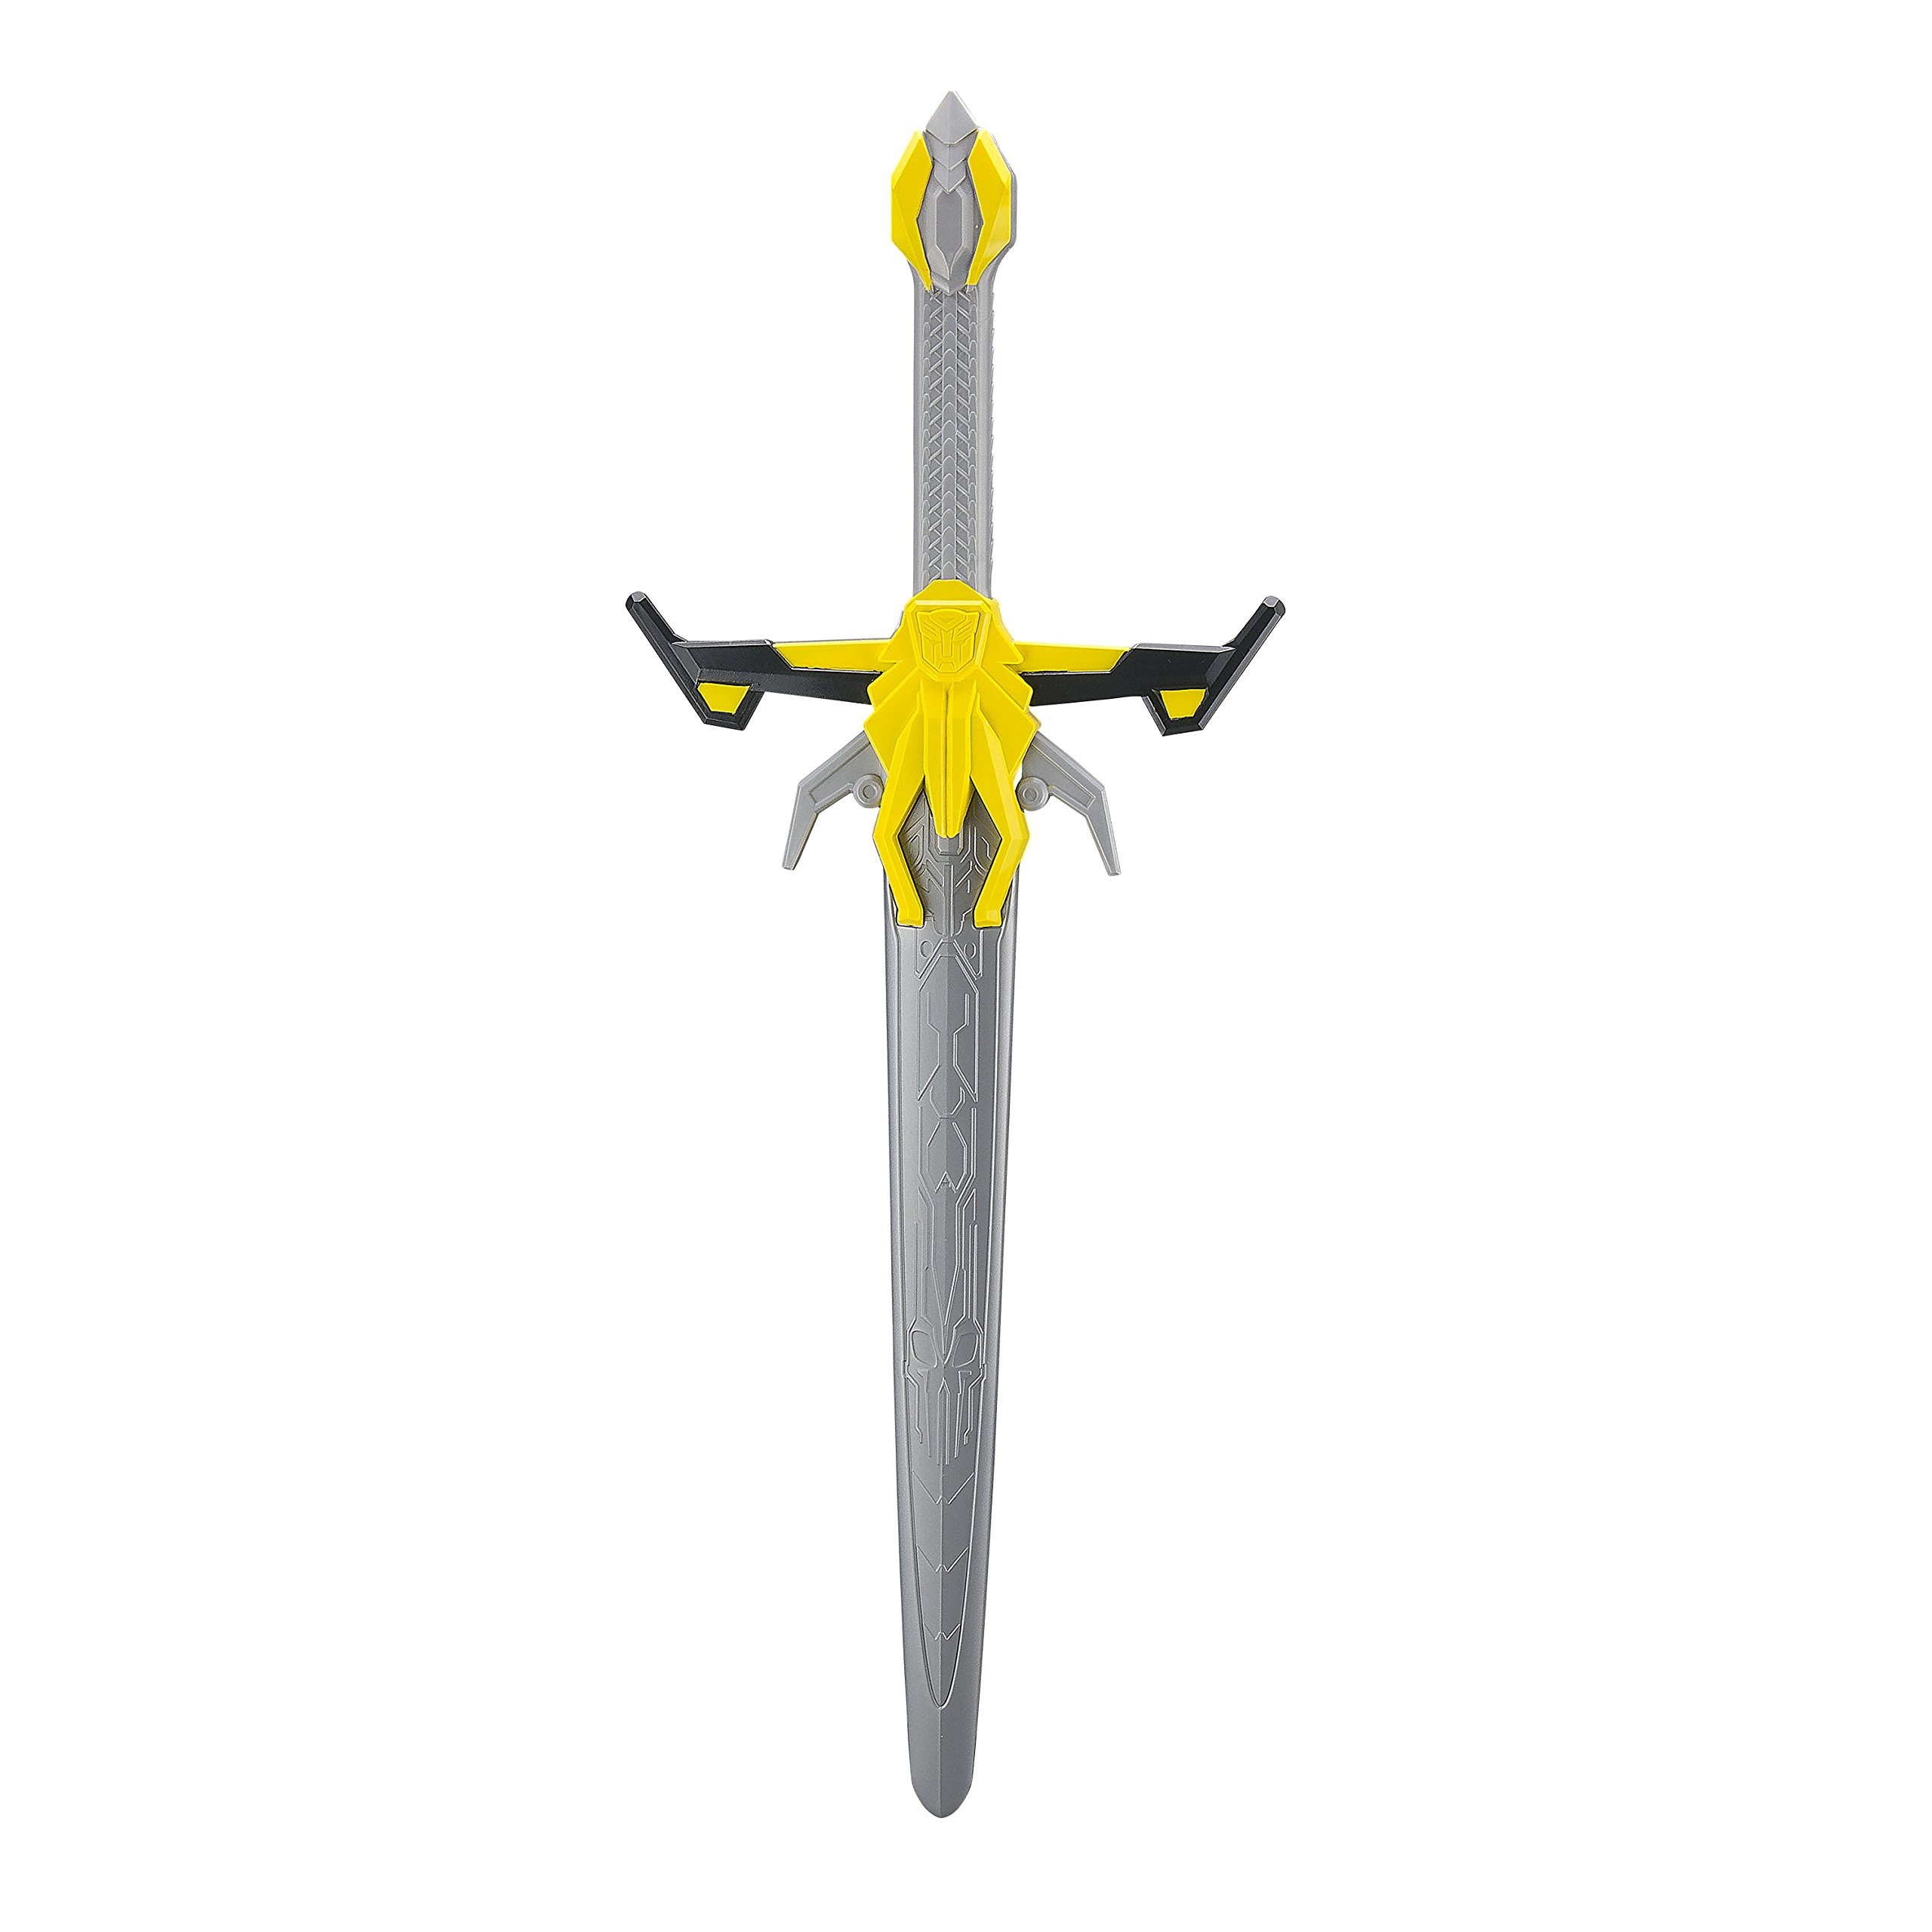 Transformers Bumblebee The Last Knight Hasbro Toy Sword with